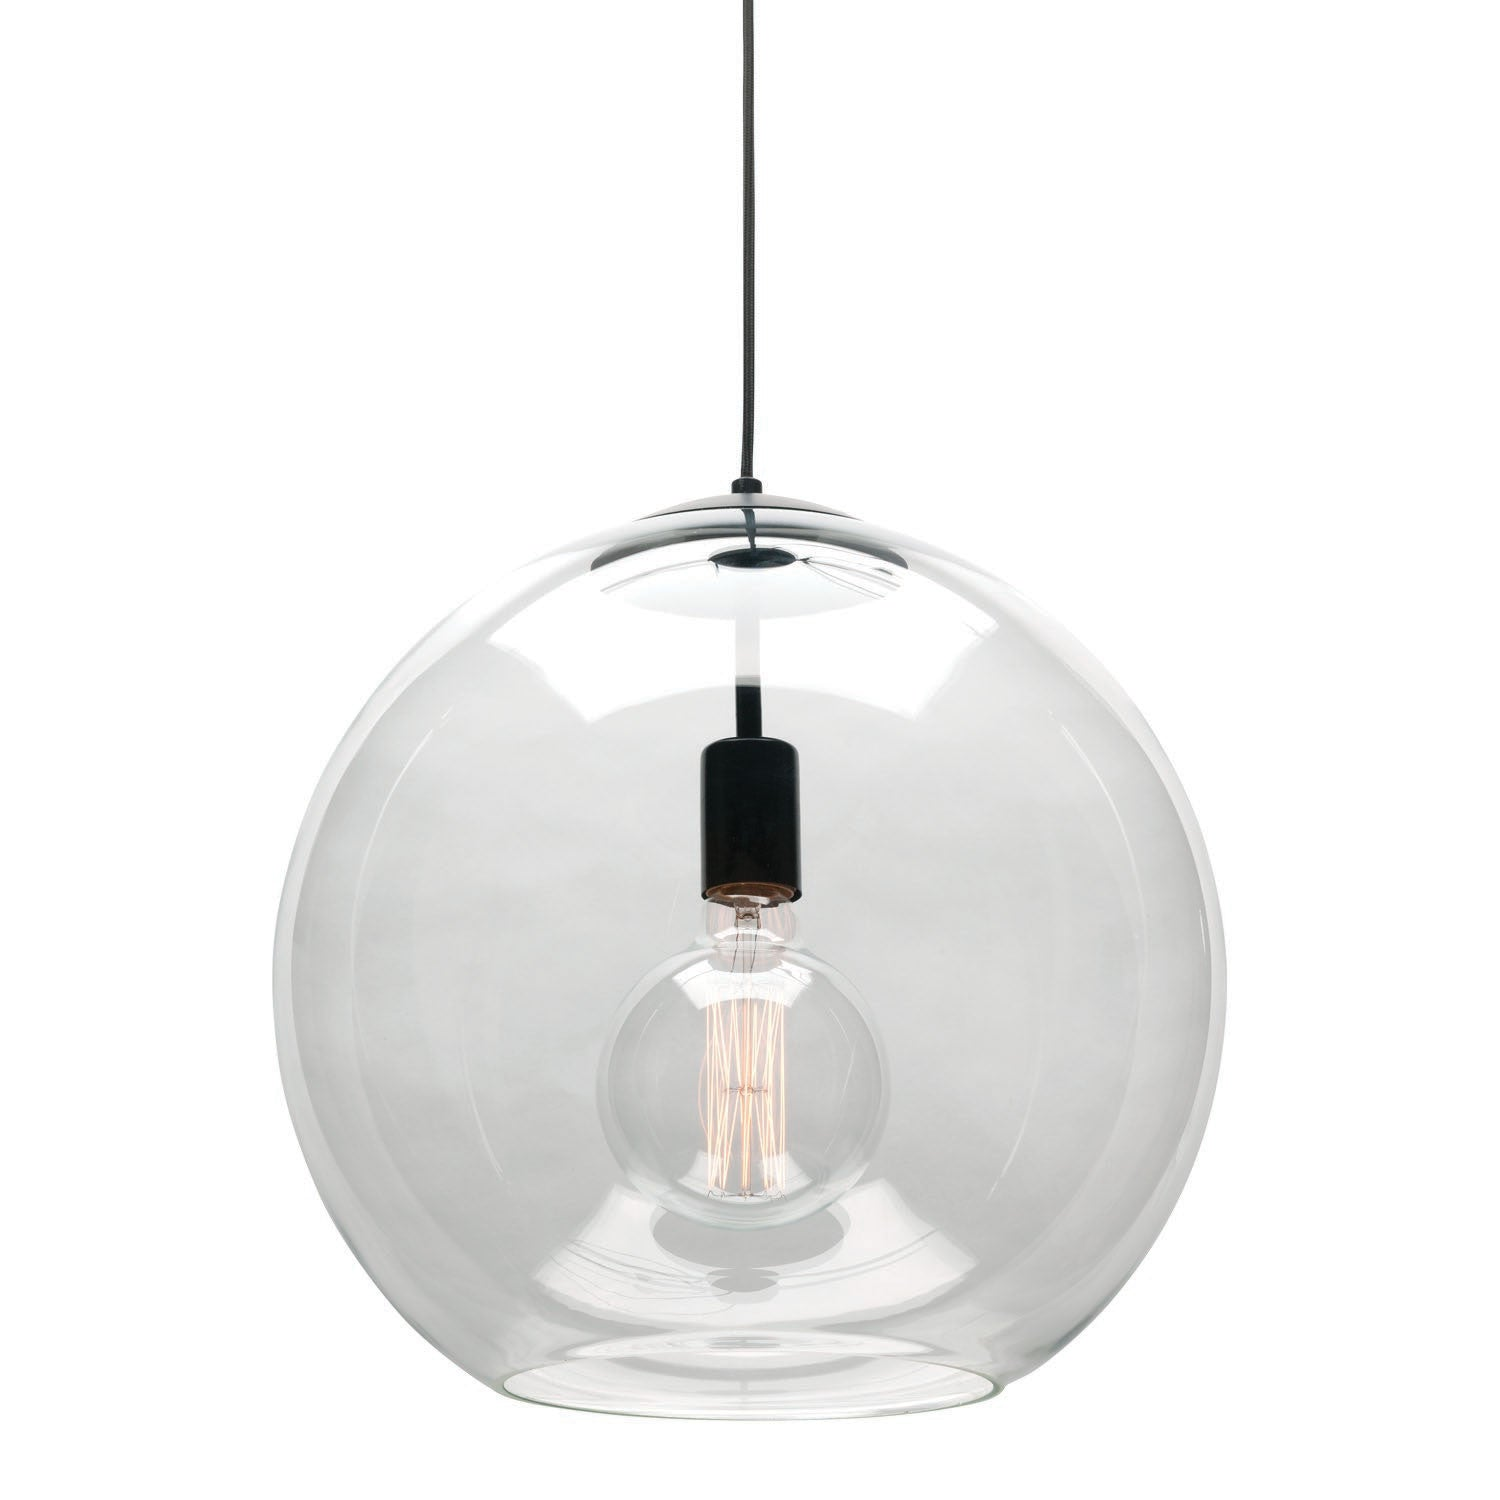 glass pendants lighting and four in matched coloured lights mixed colours pin or beautiful stunning all alone these shown pendant look sizes are available light